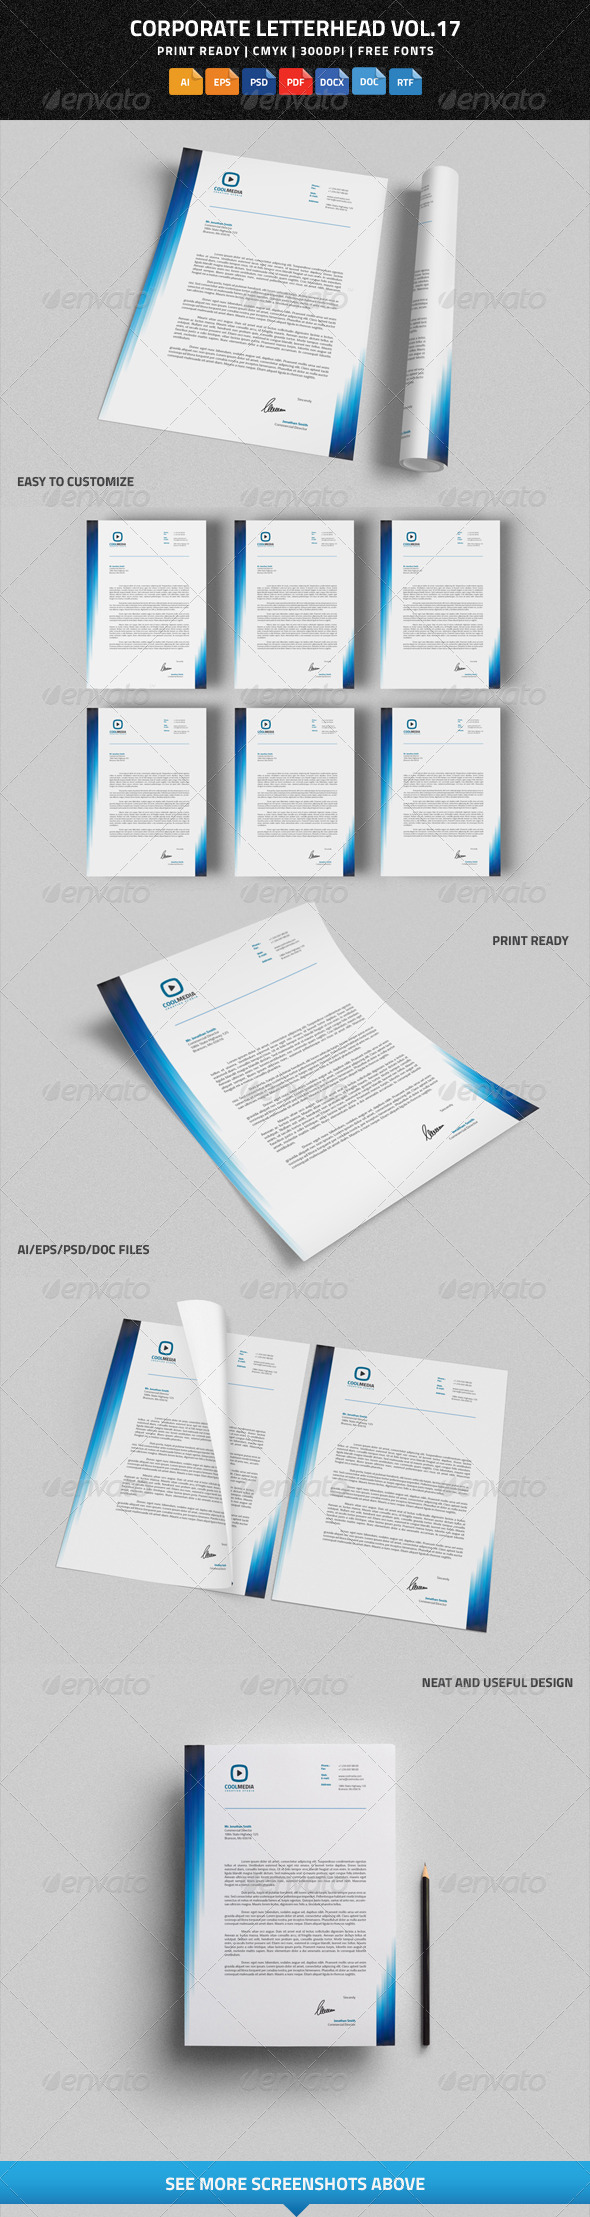 Free Microsoft Word Letterhead Templates Endearing Corporate Letterhead Vol.17 With Ms Word Docdocx  Pinterest  Word .